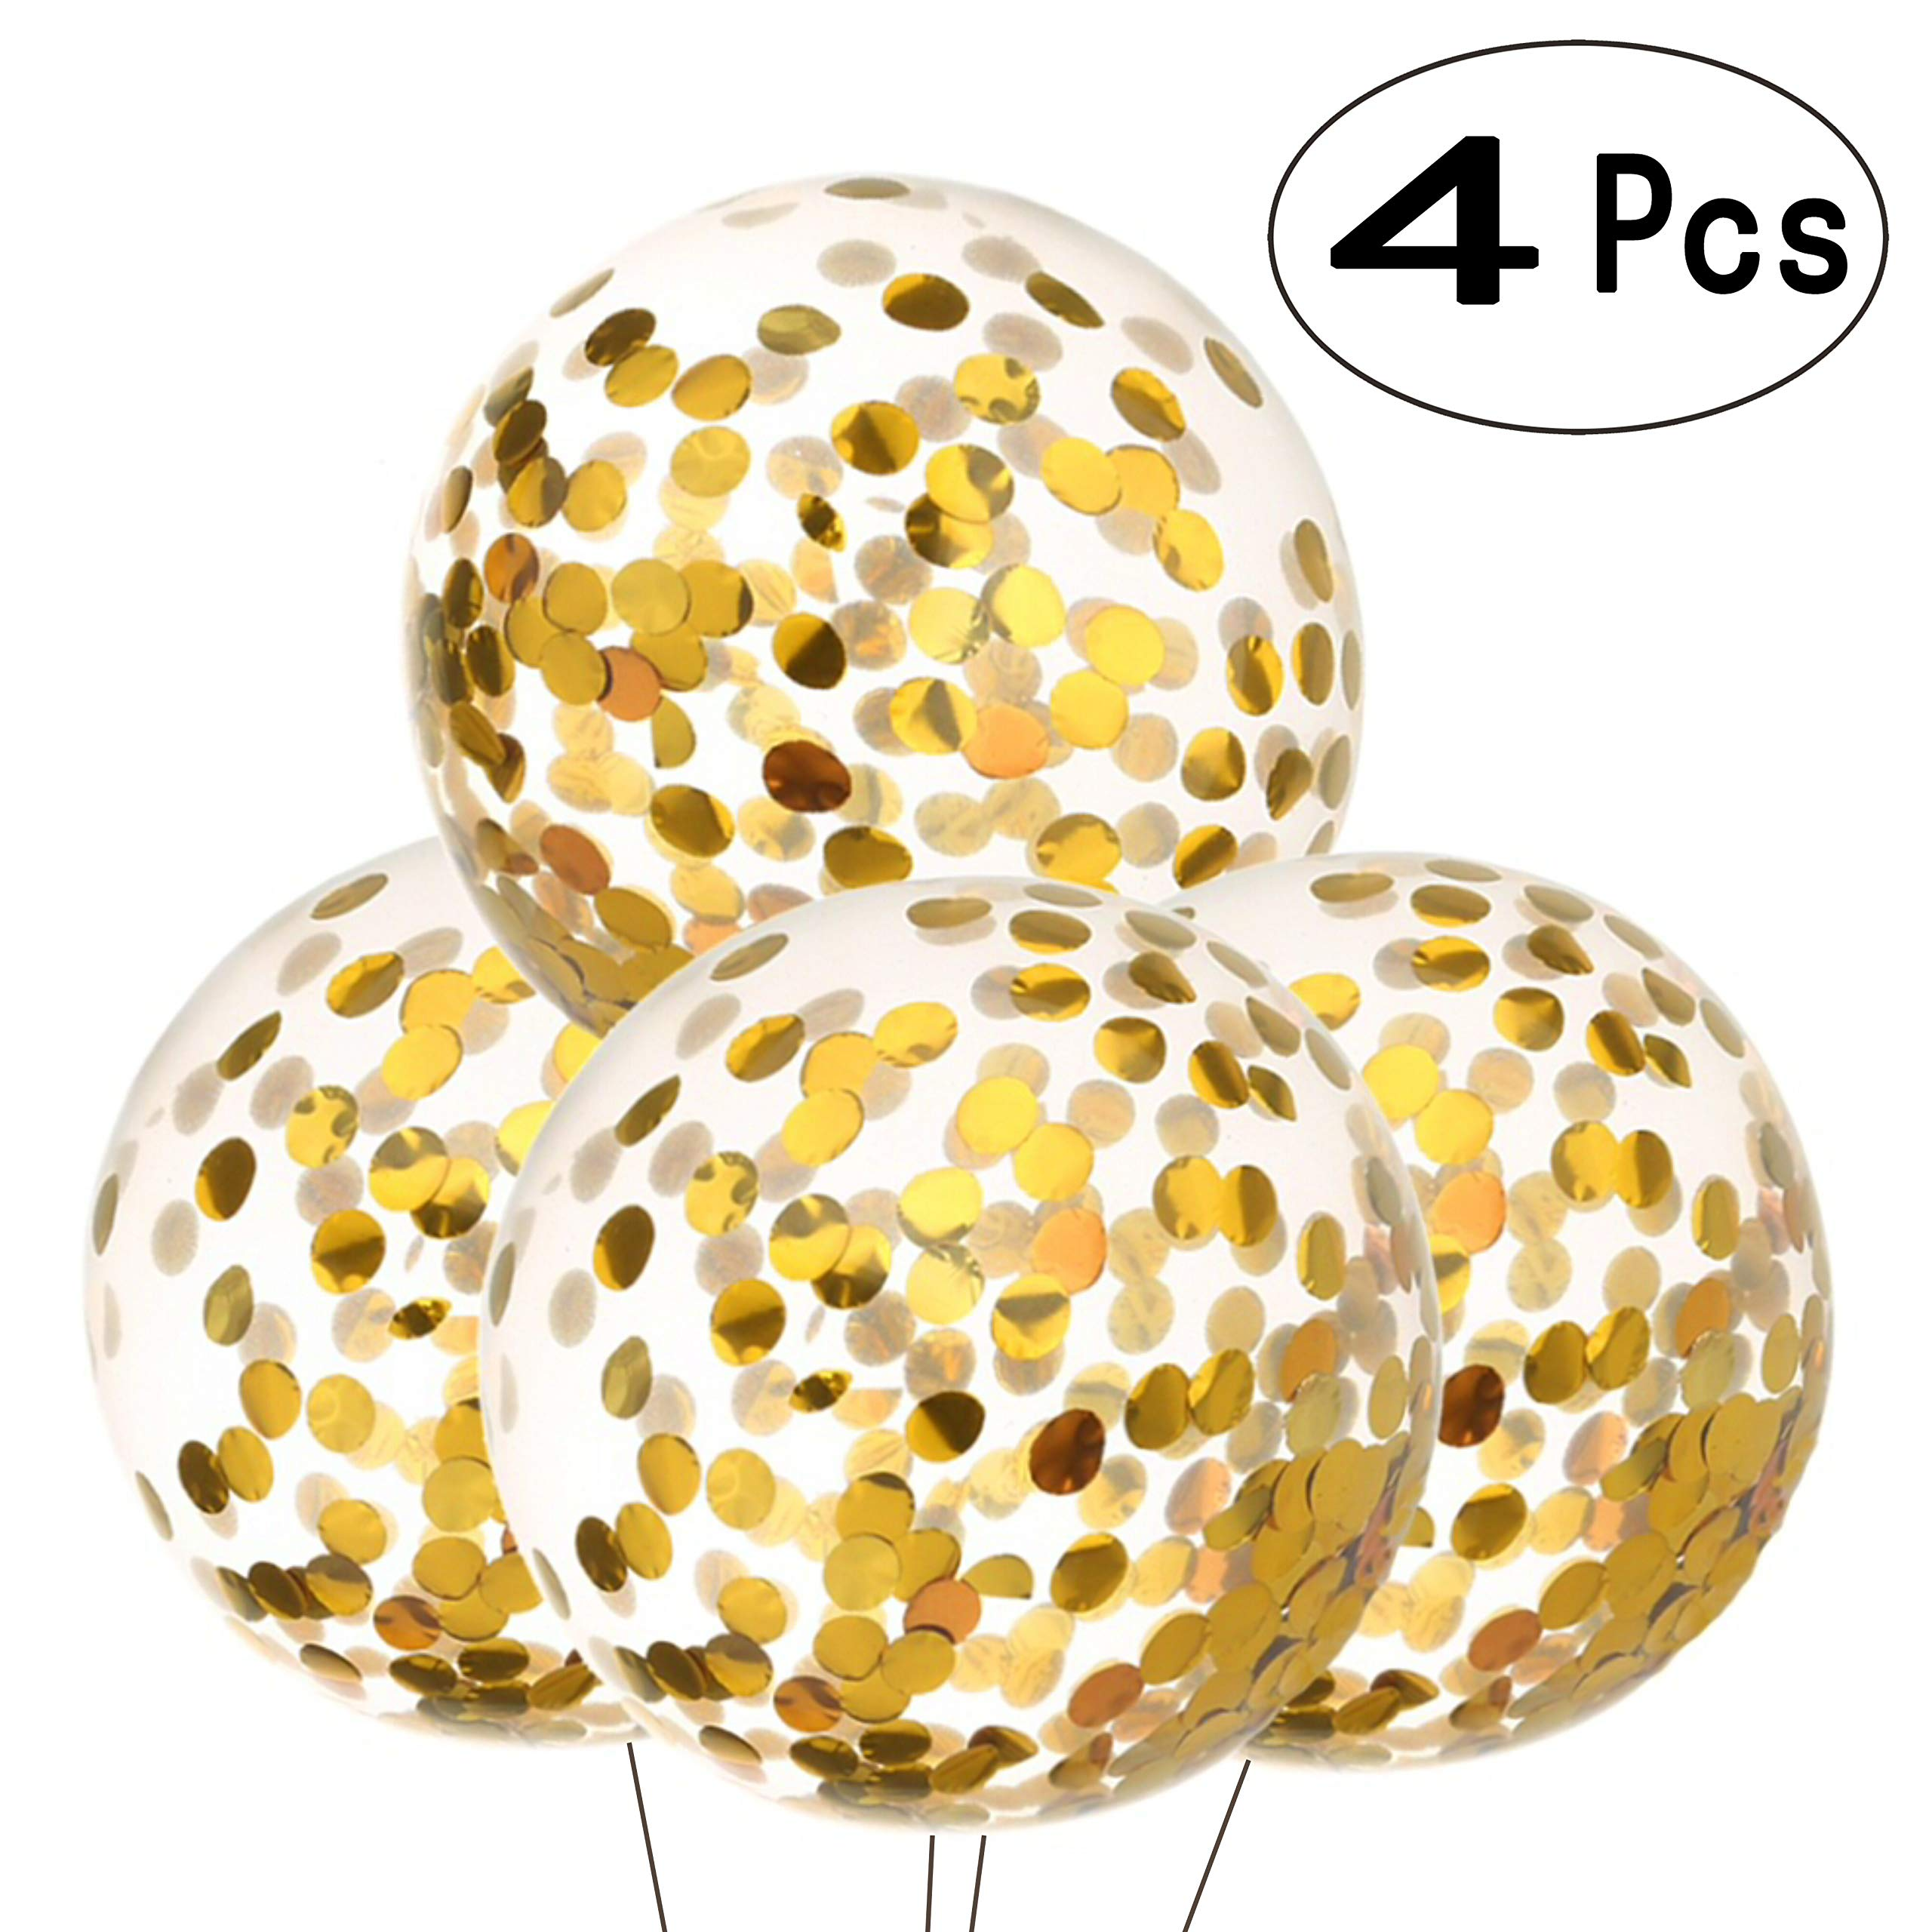 36 inch Glitter Gold Round Confetti Balloons Giant Clear Latex Helium Confetti Balloons Baby Shower Birthday Wedding Bridal Shower Engagement Favors Party Decorations